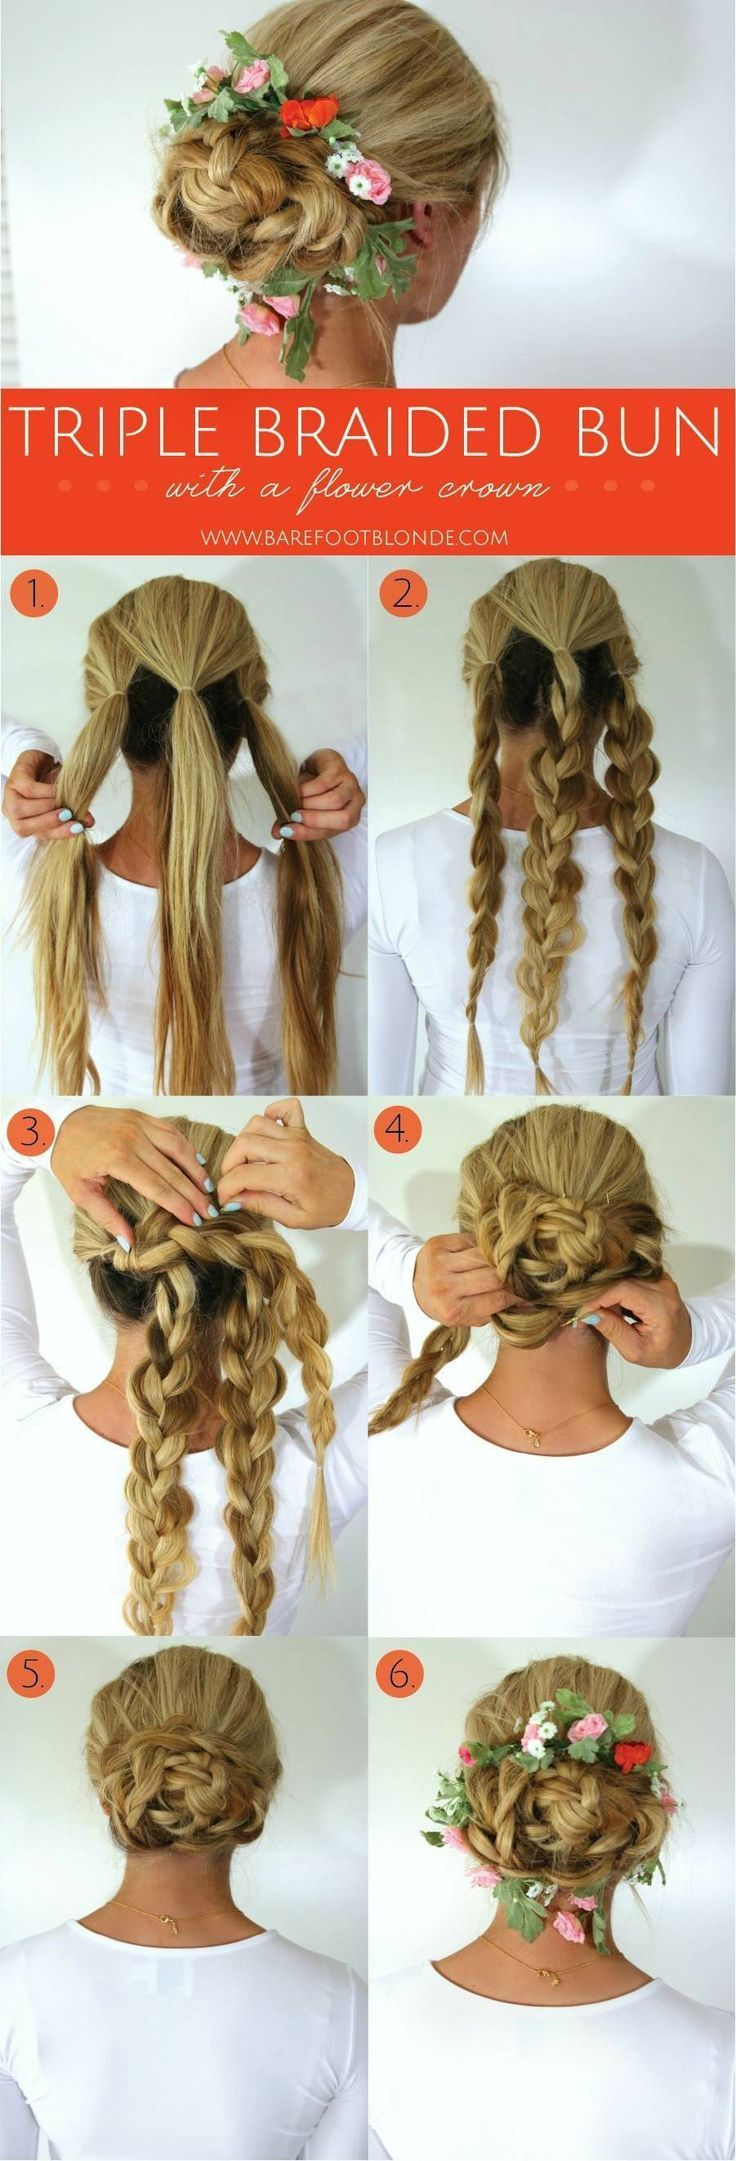 10 Of The Best Braided Hairstyles | Awesome DIY Hair Updo For Long Hair By…